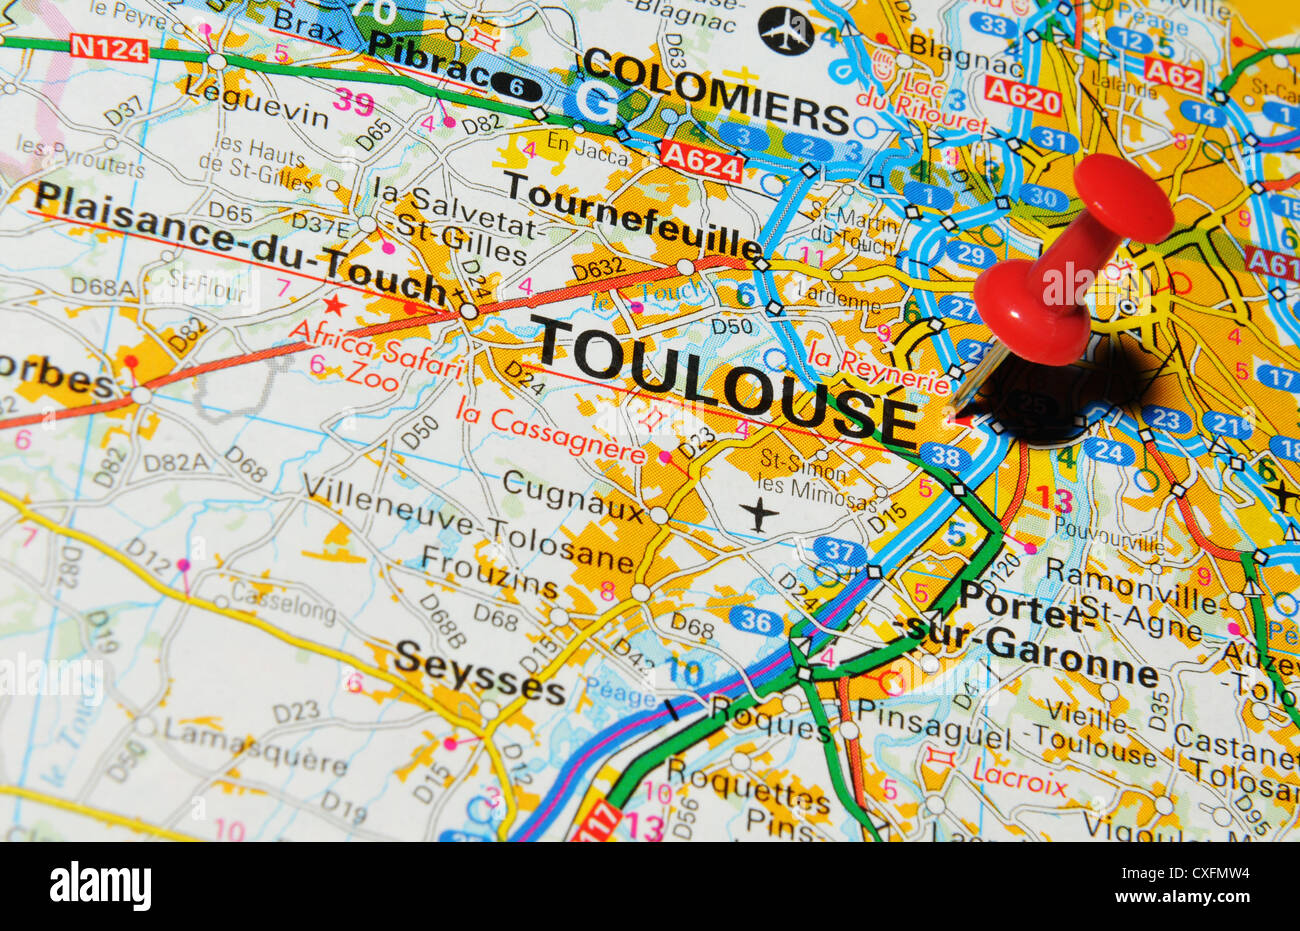 Toulouse France On Map Stock Photo 50747456 Alamy